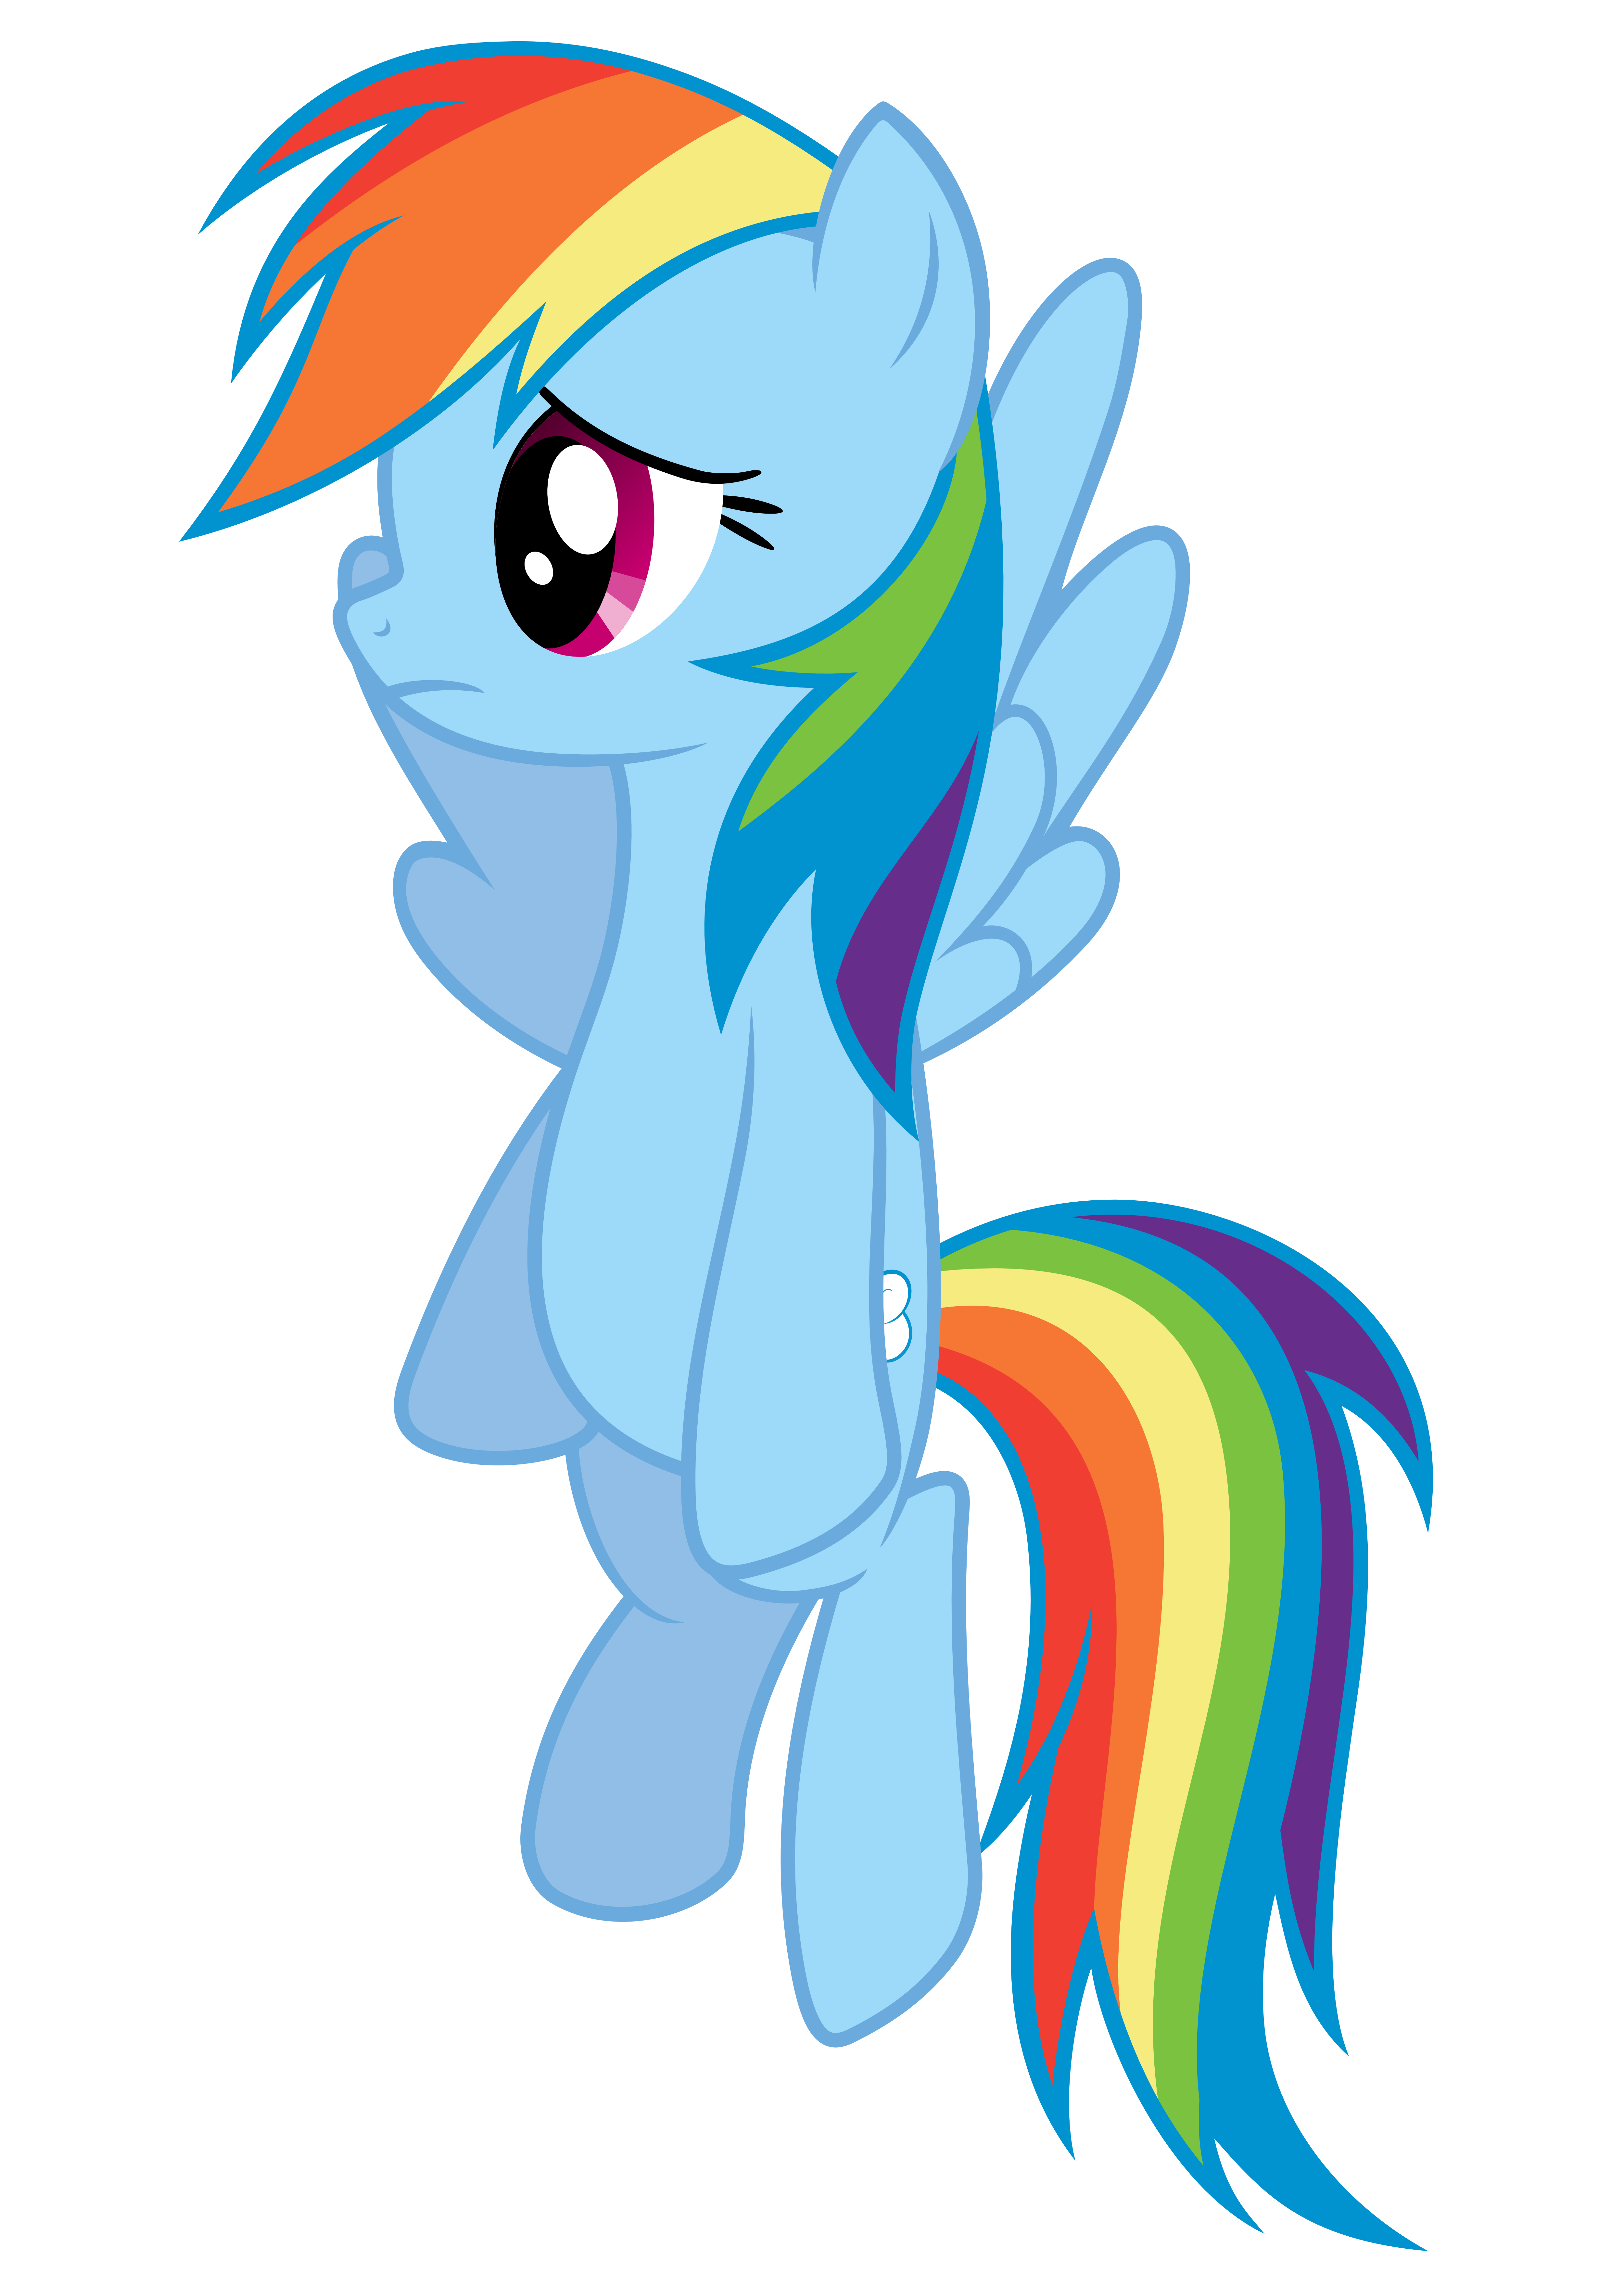 Rainbow Dash Vector - :( by Anxet.deviantart.com on ... graphic royalty free